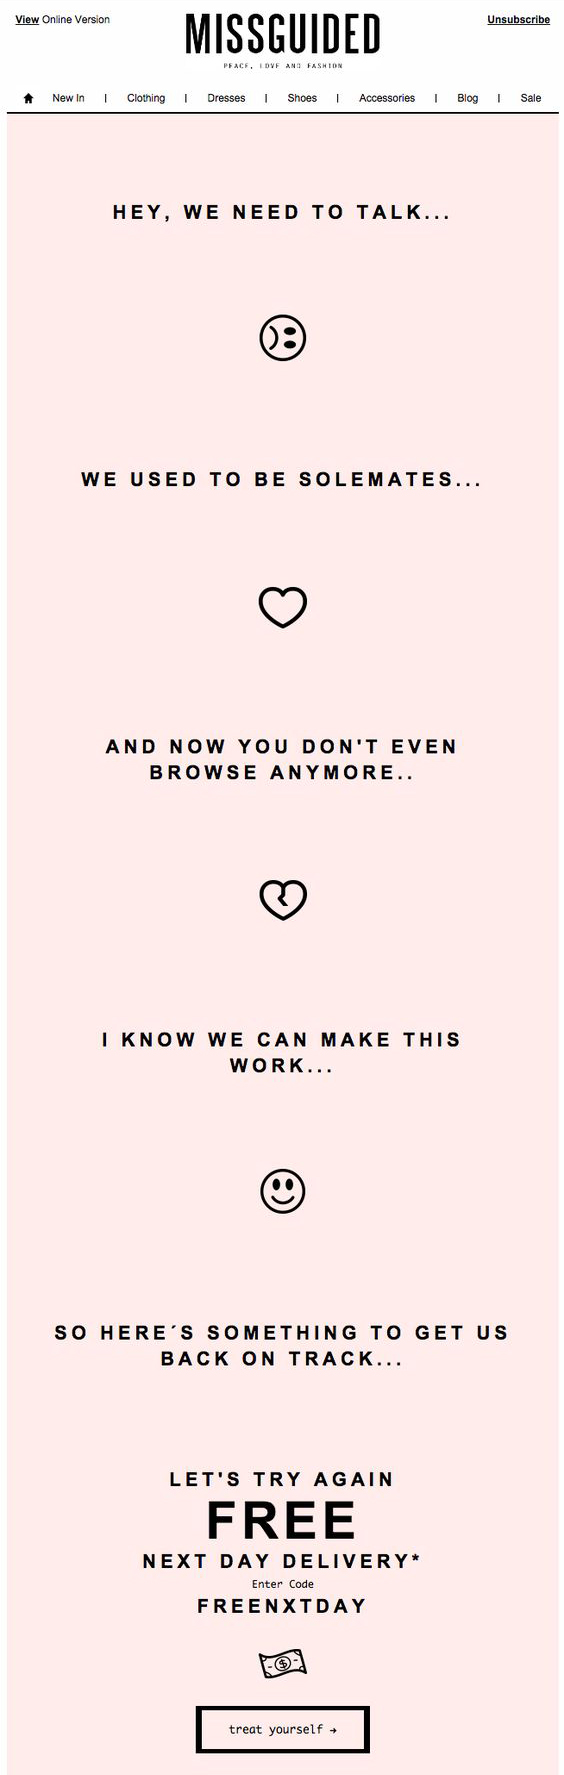 missguided-email-campaign